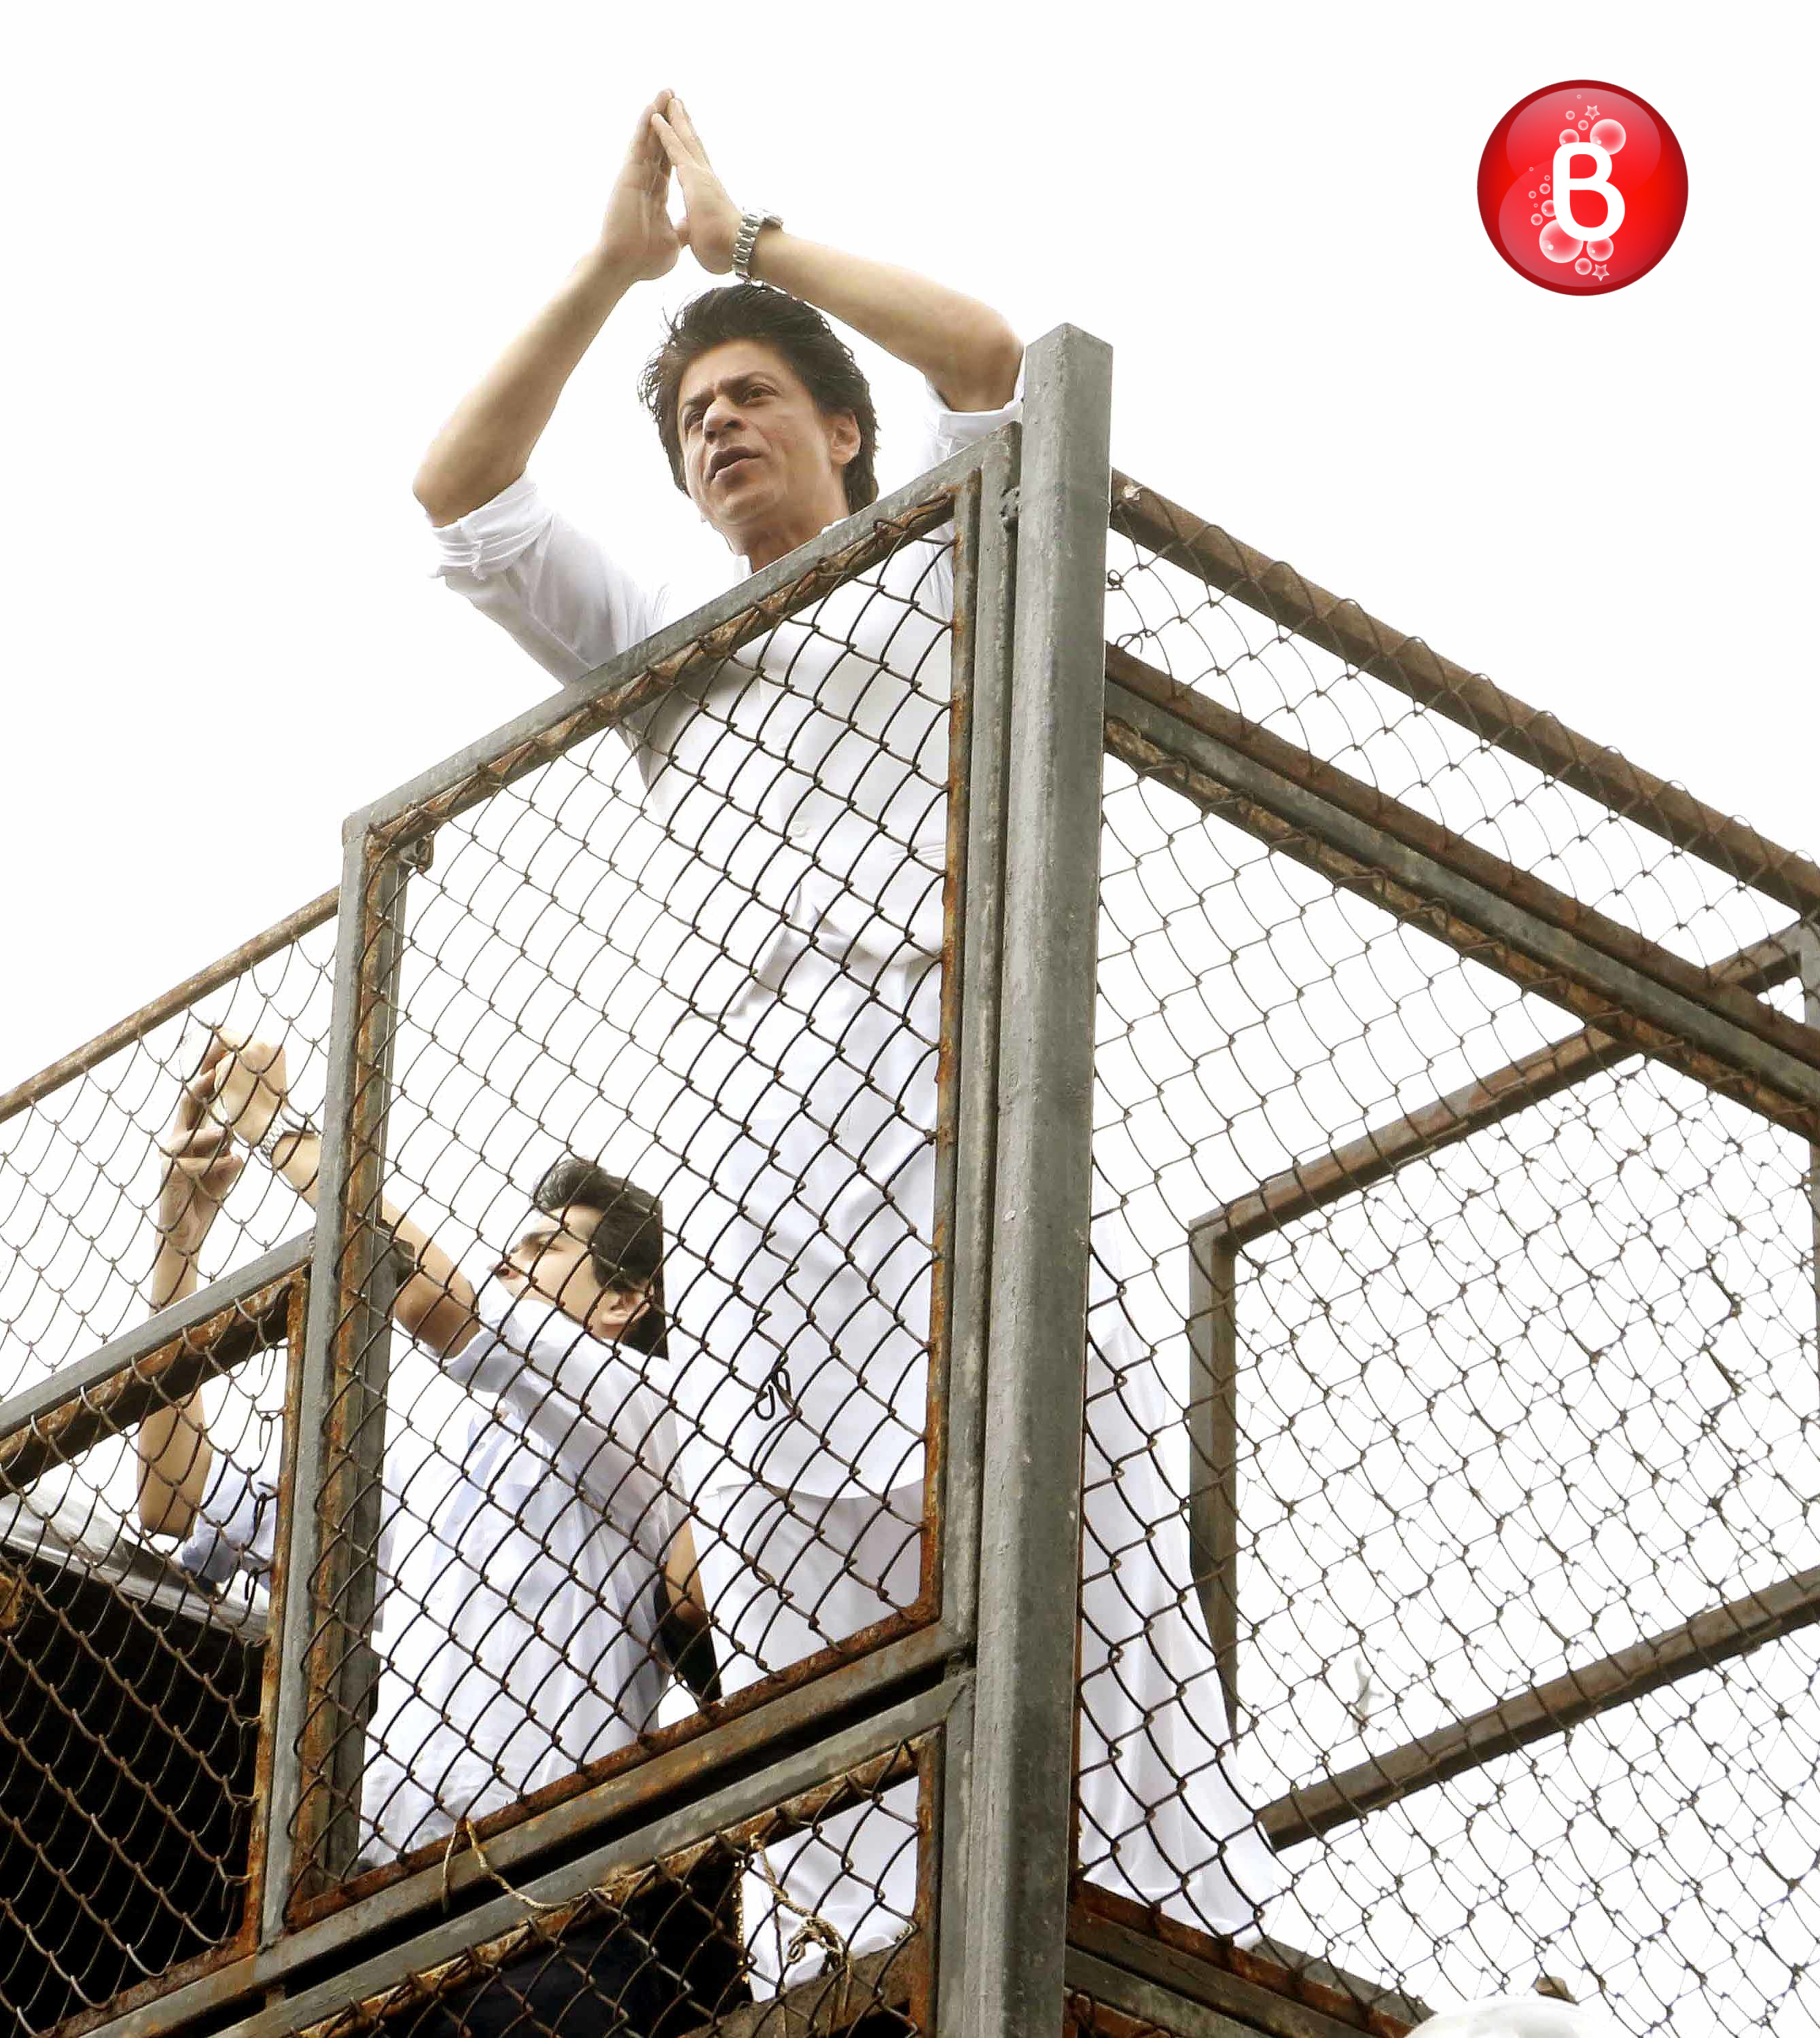 Shah Rukh Khan waves to fans